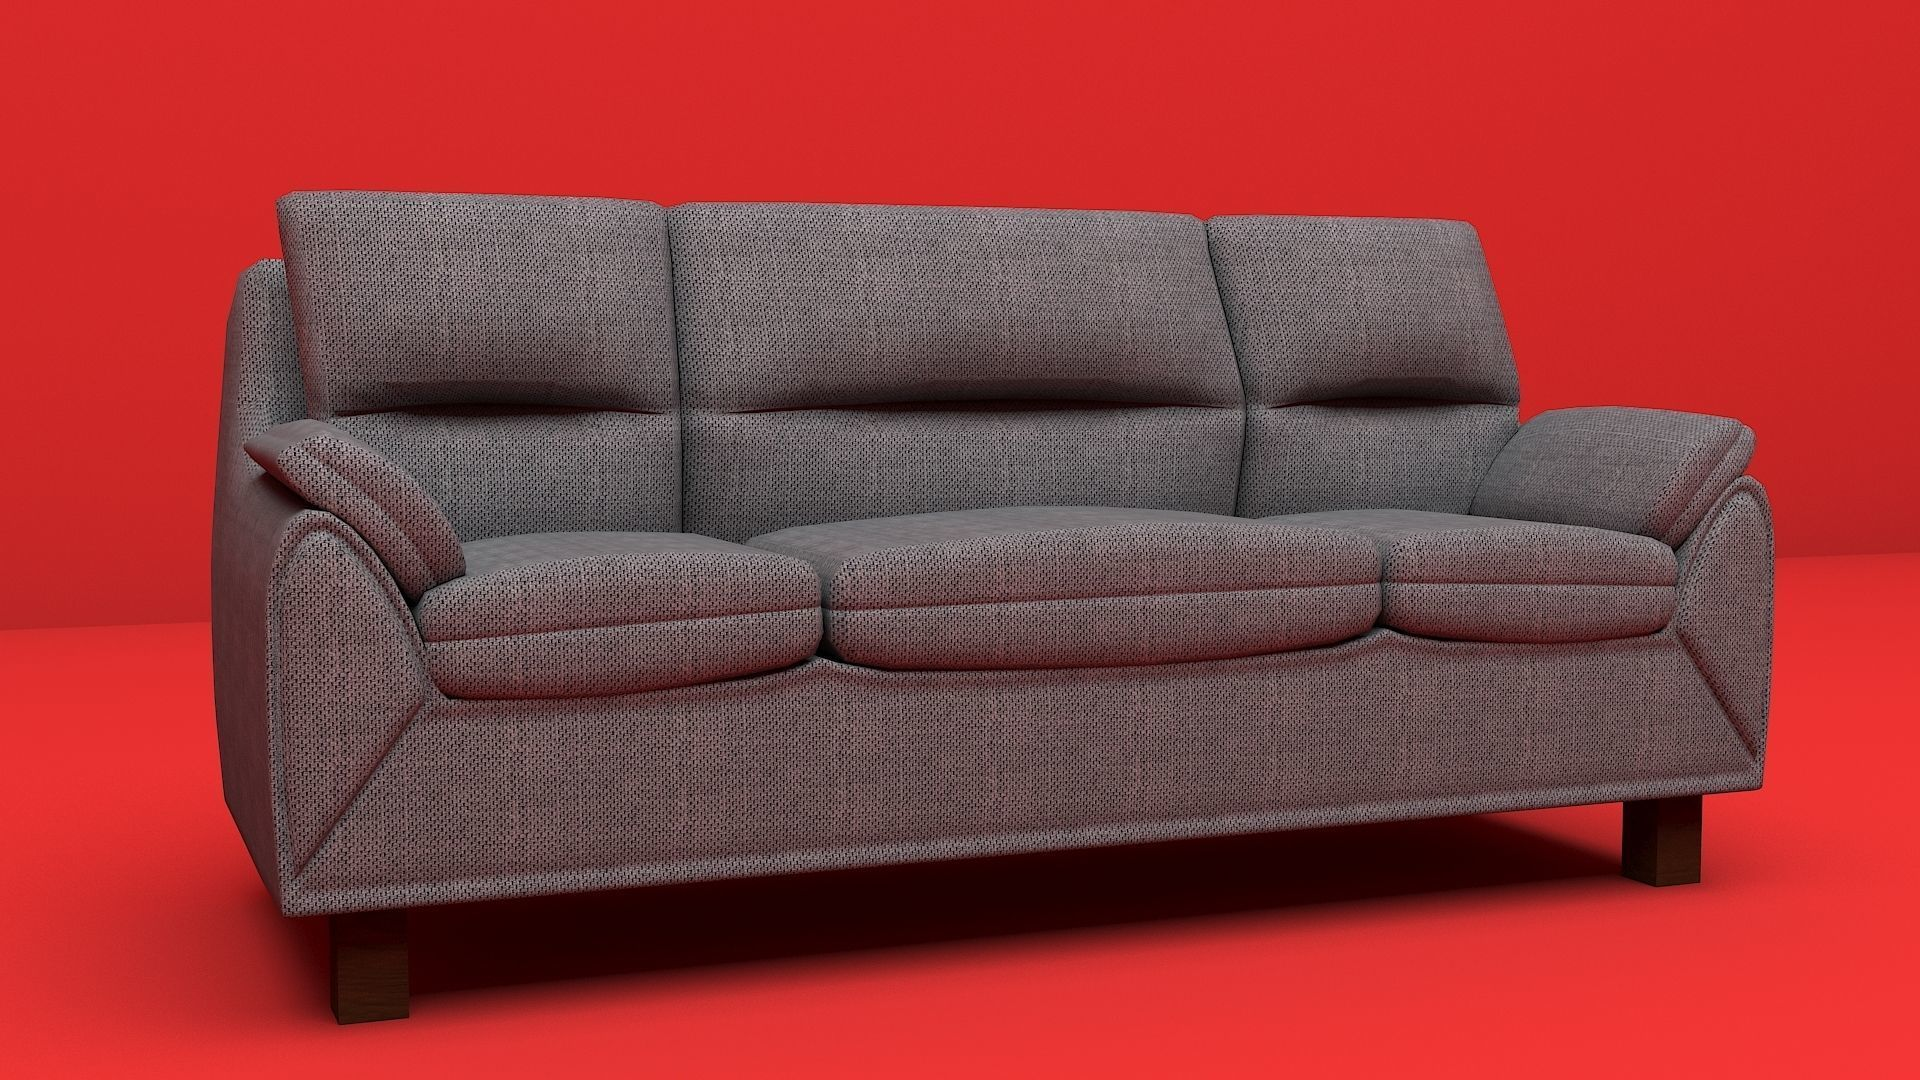 Sofa furniture modern sofa interior object 3d model